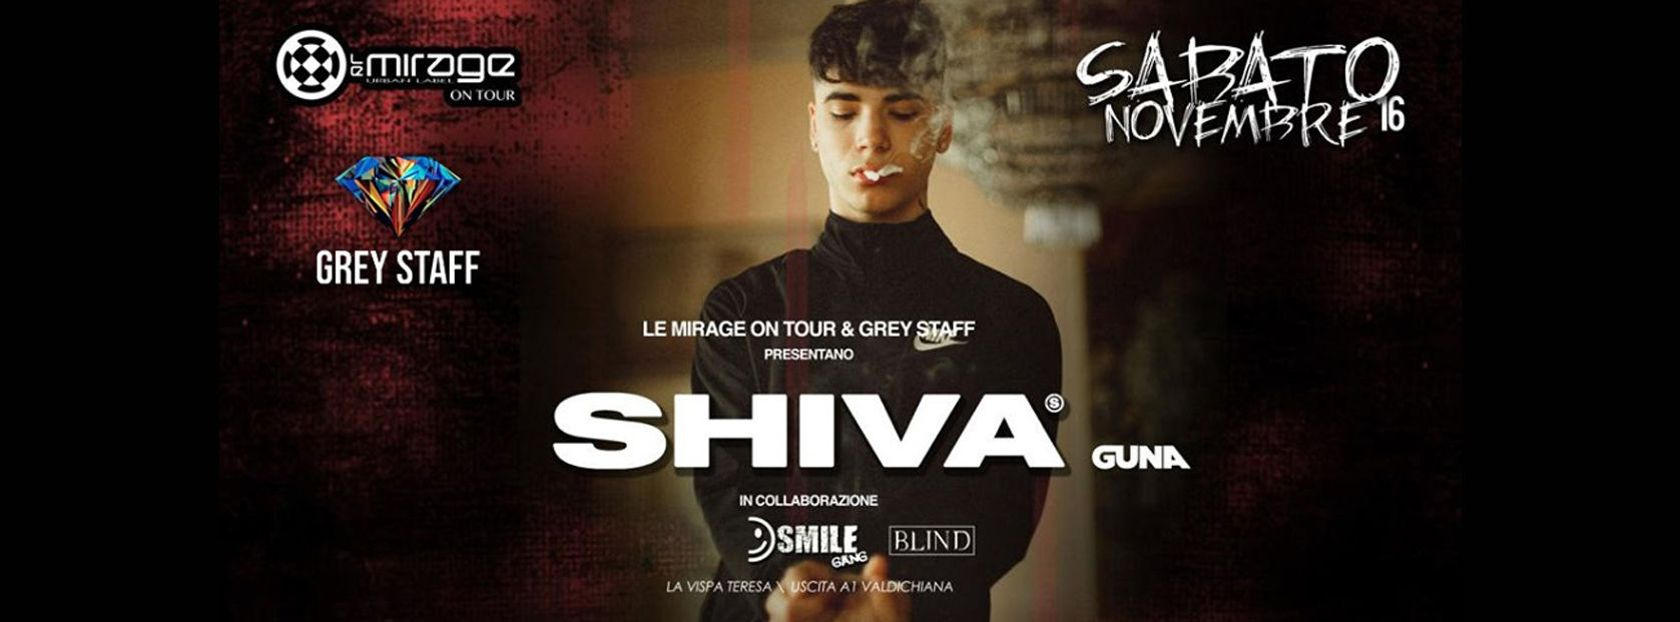 - Special guest Shiva